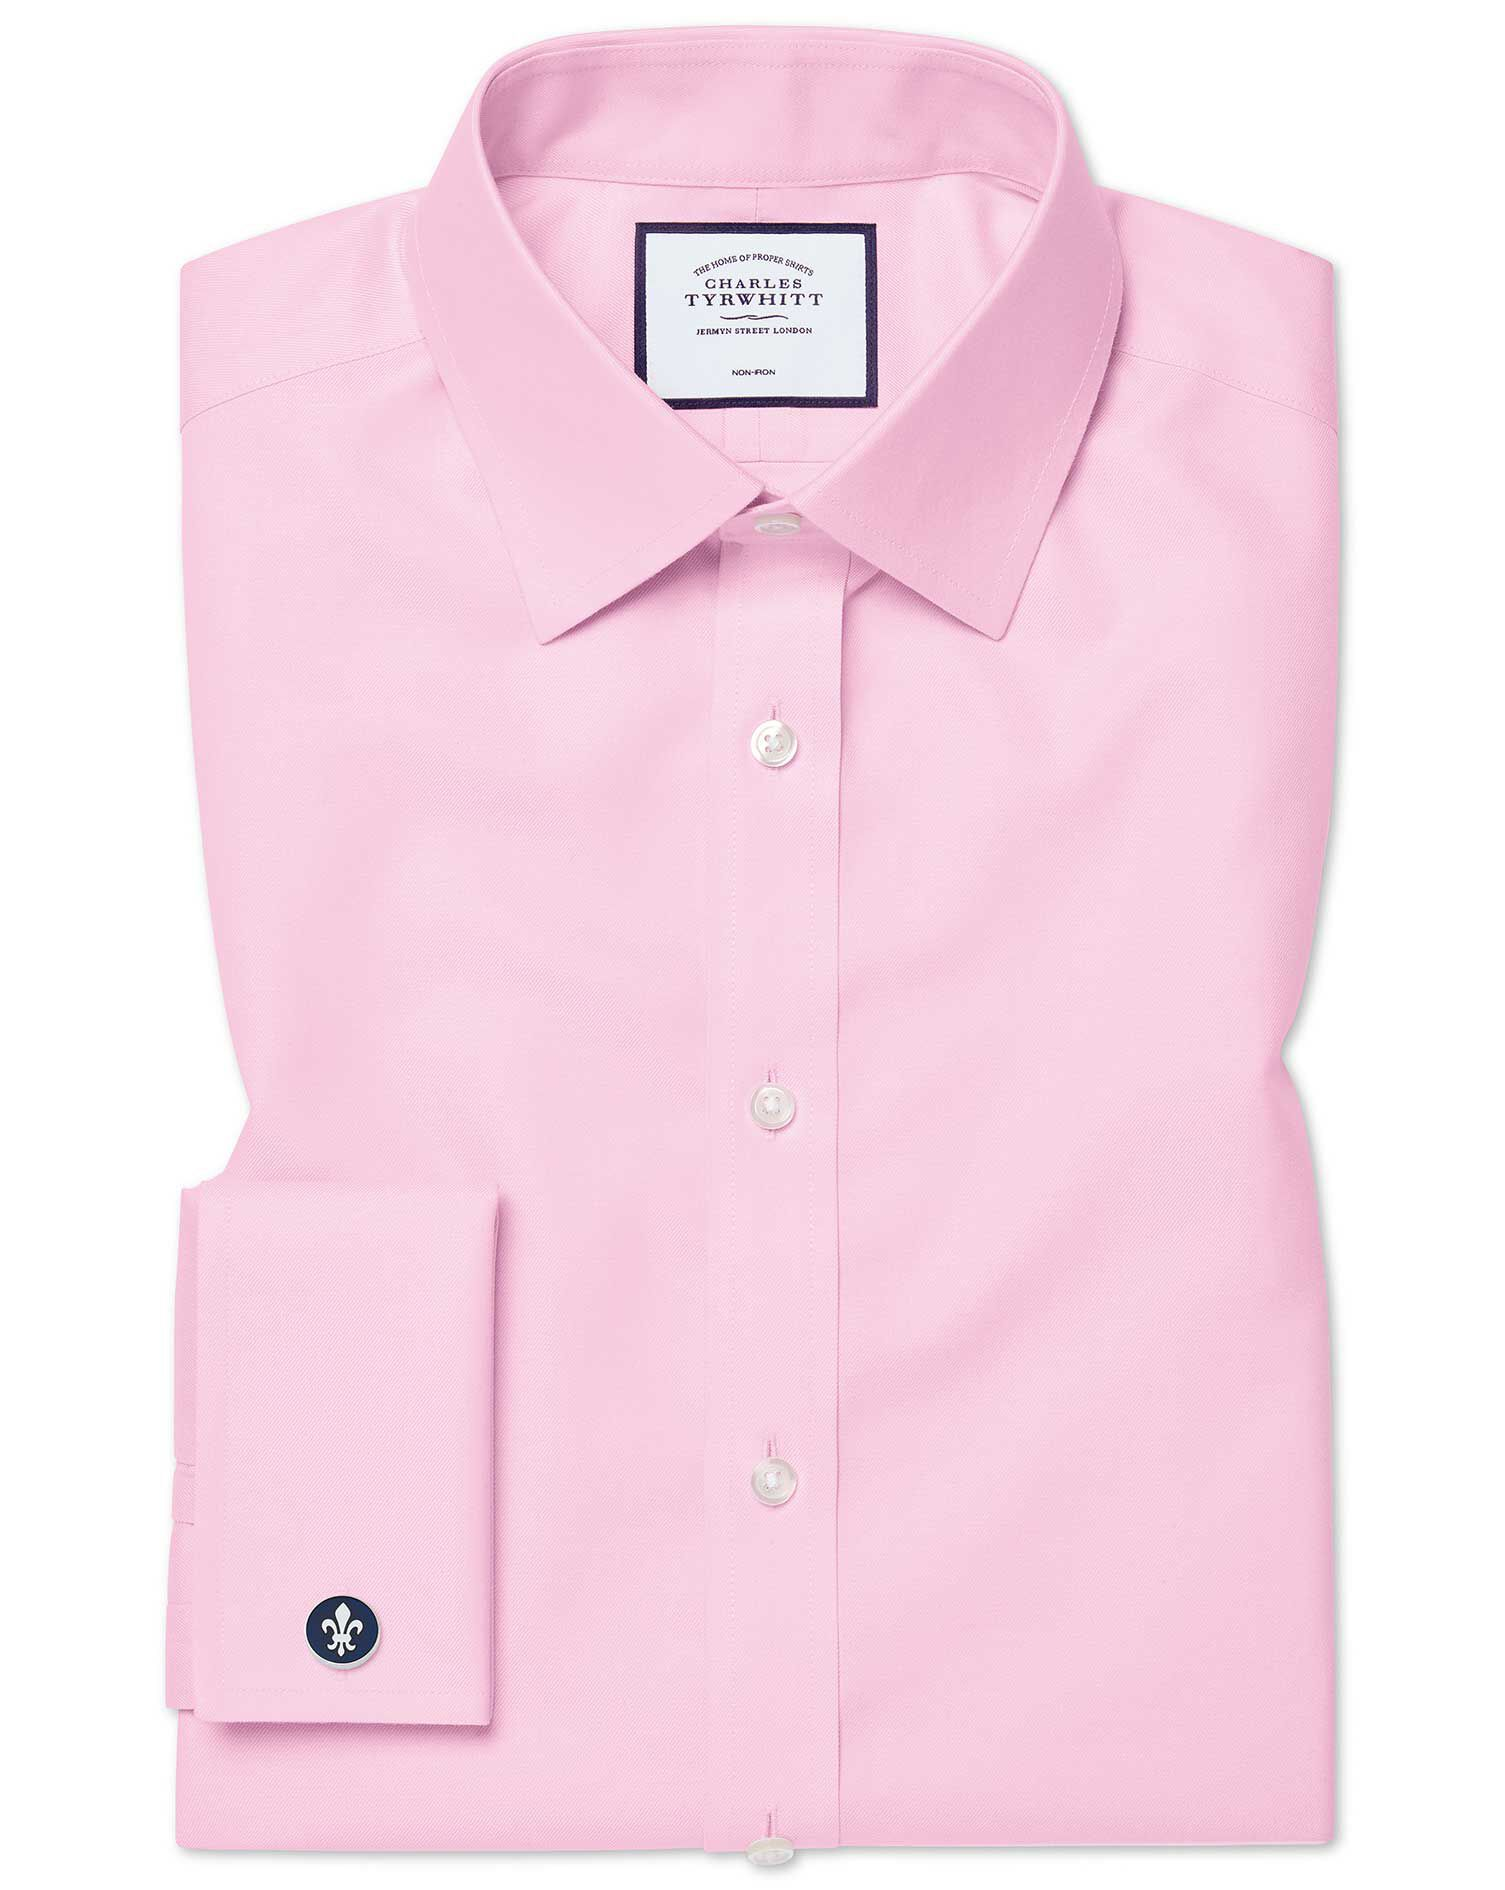 Classic Fit Non-Iron Twill Pink Cotton Formal Shirt Double Cuff Size 16.5/33 by Charles Tyrwhitt